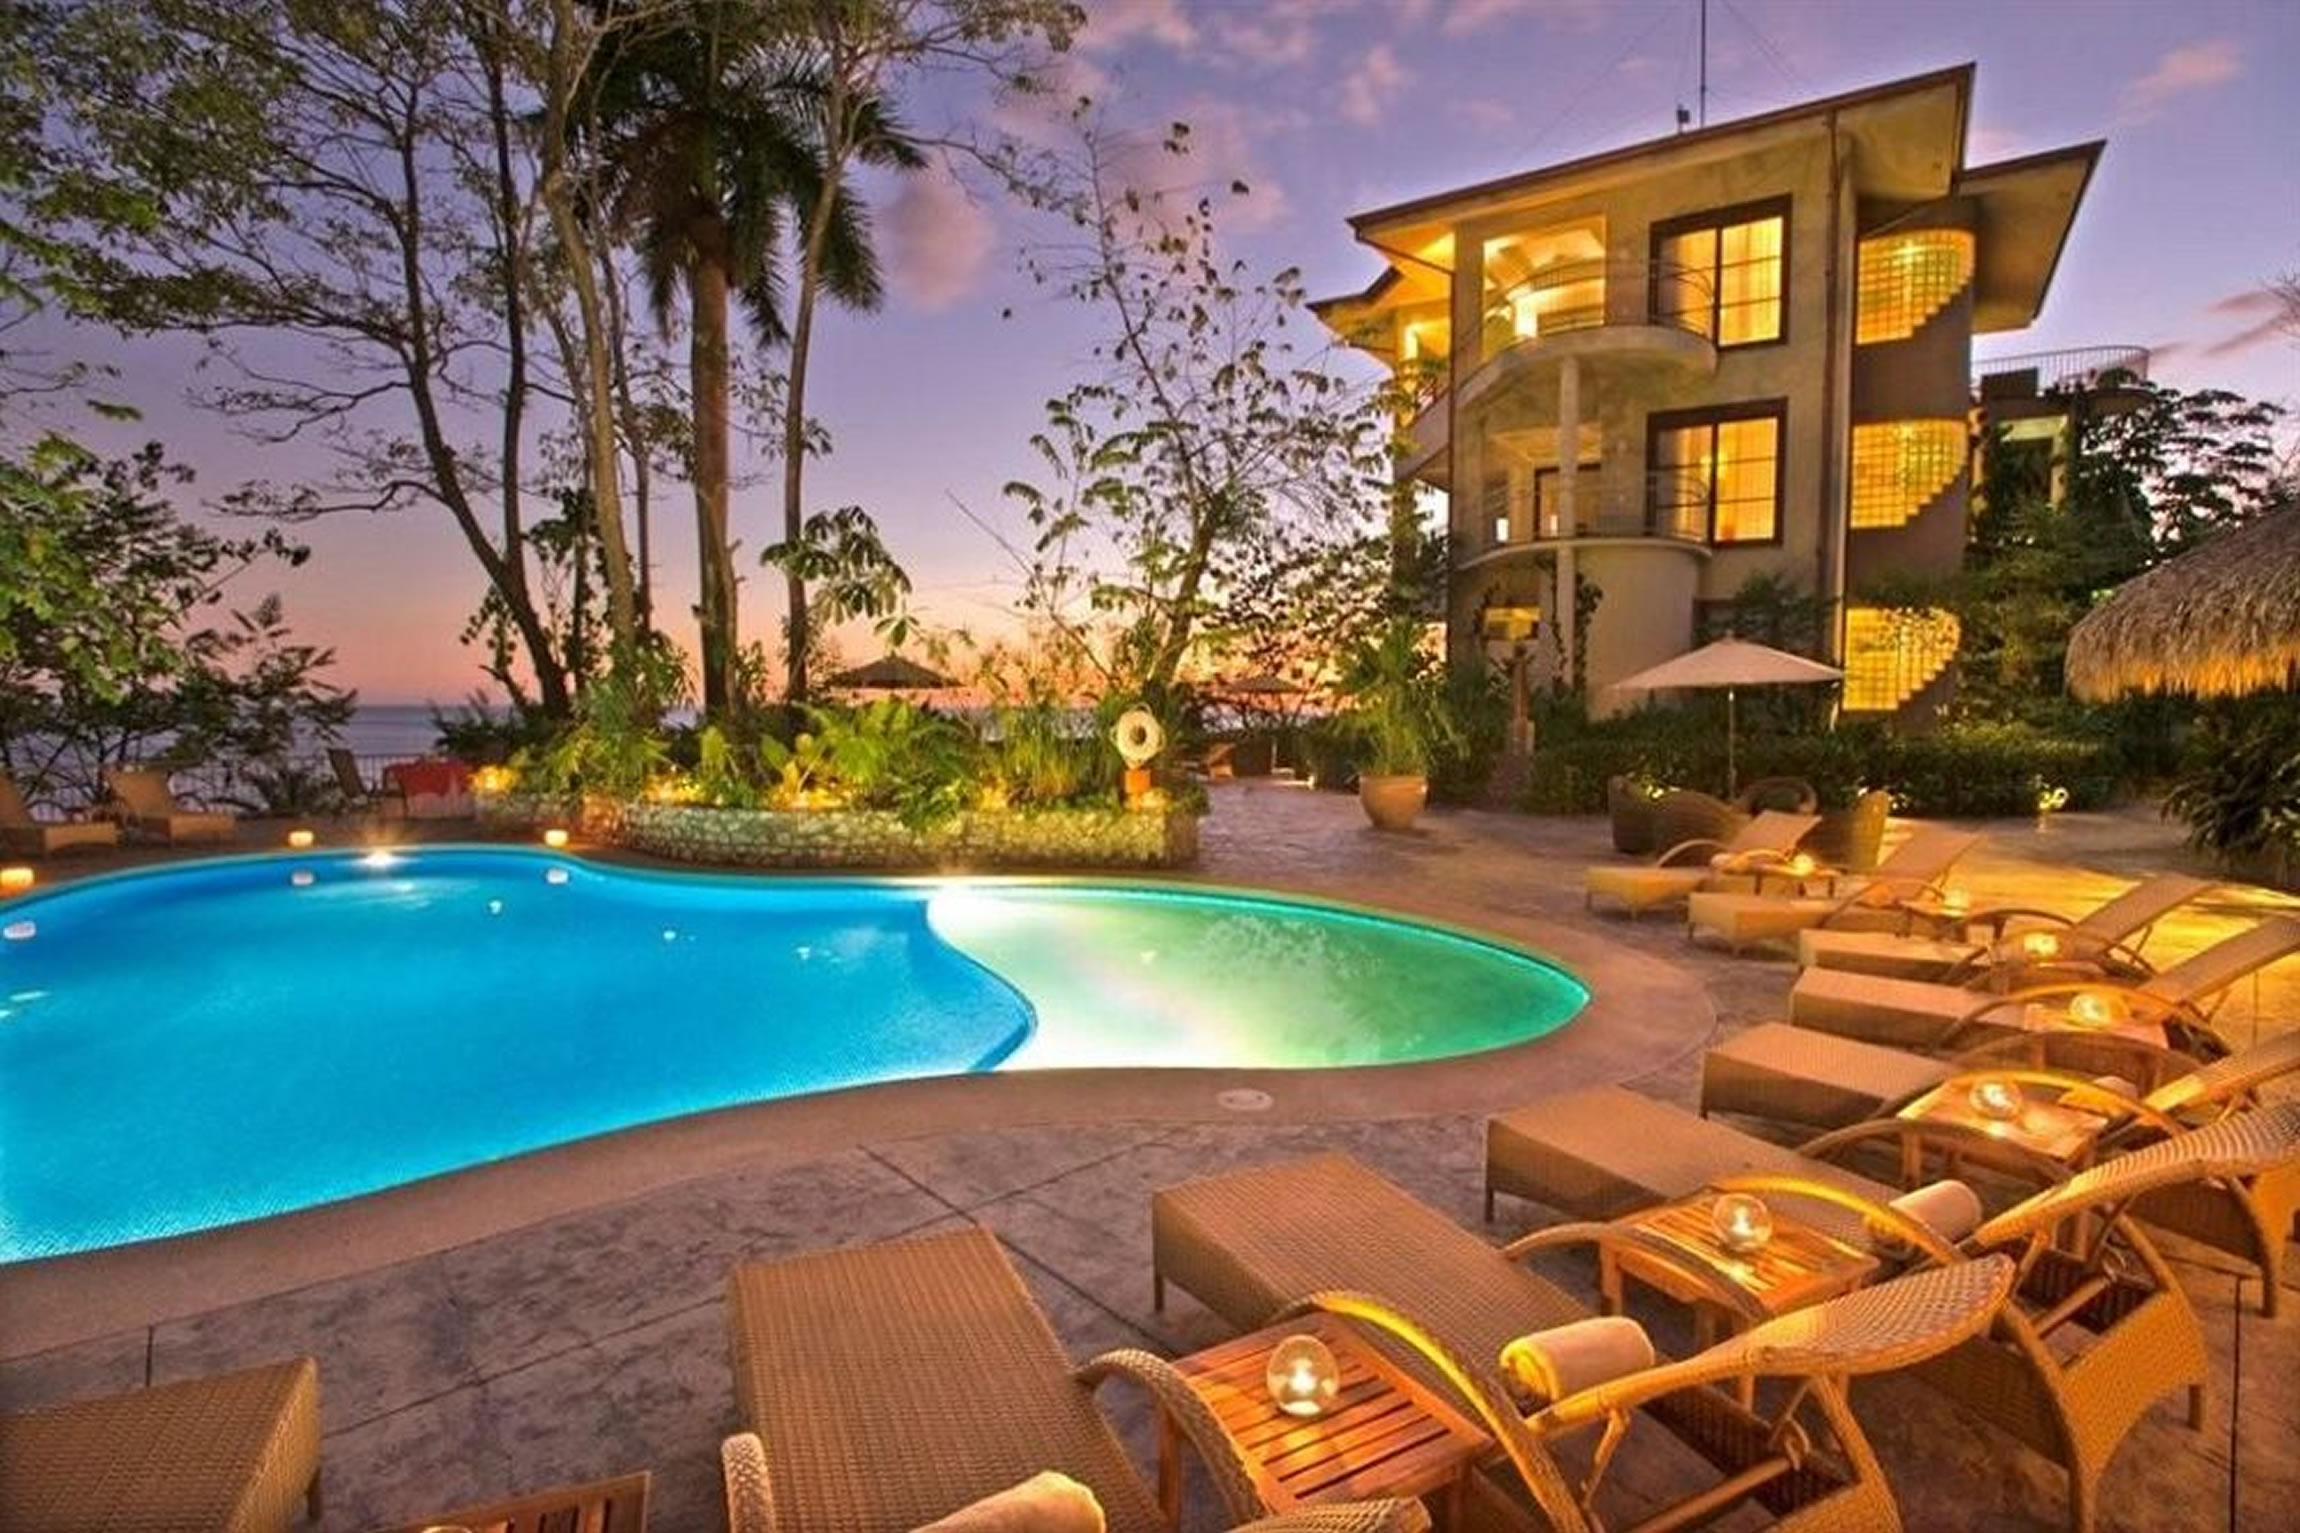 Costa-Rica-Holiday-Tours-Arenas-del-Mar-Pool-2